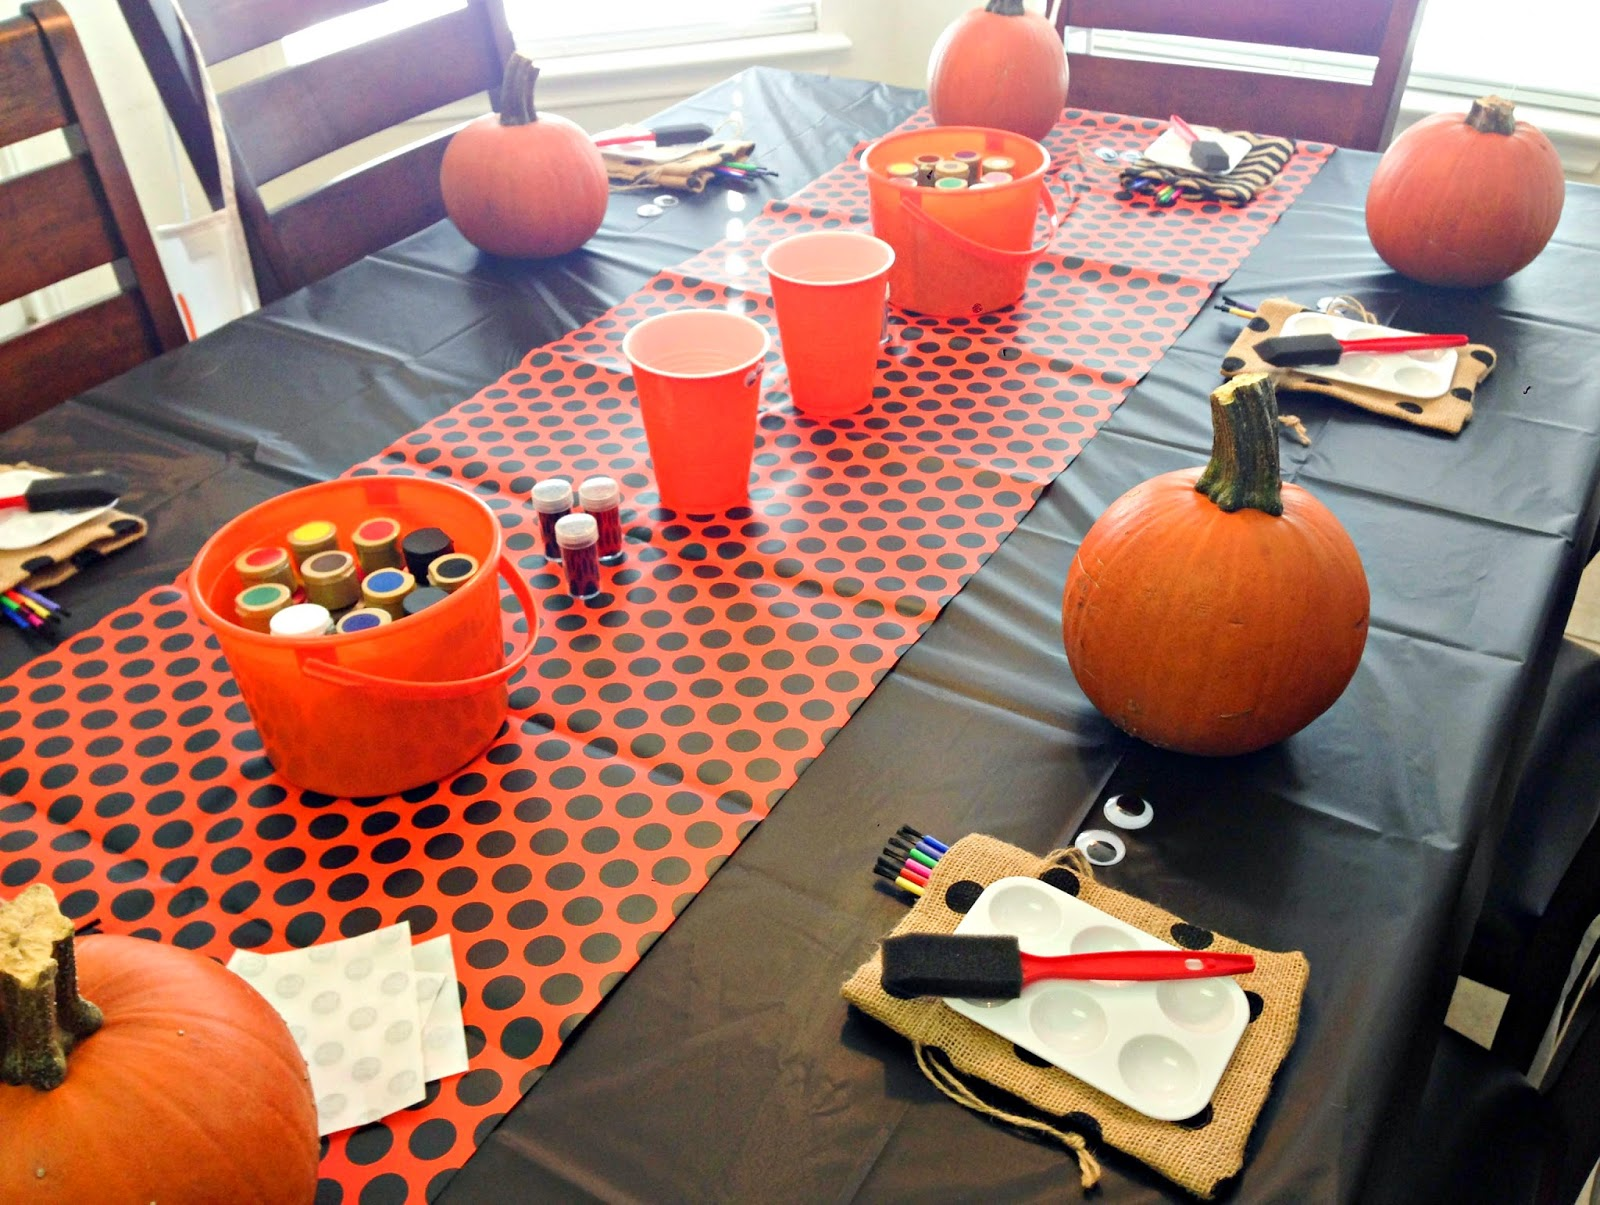 22 Of The Best DIY Fall Festival Ideas 2071183324